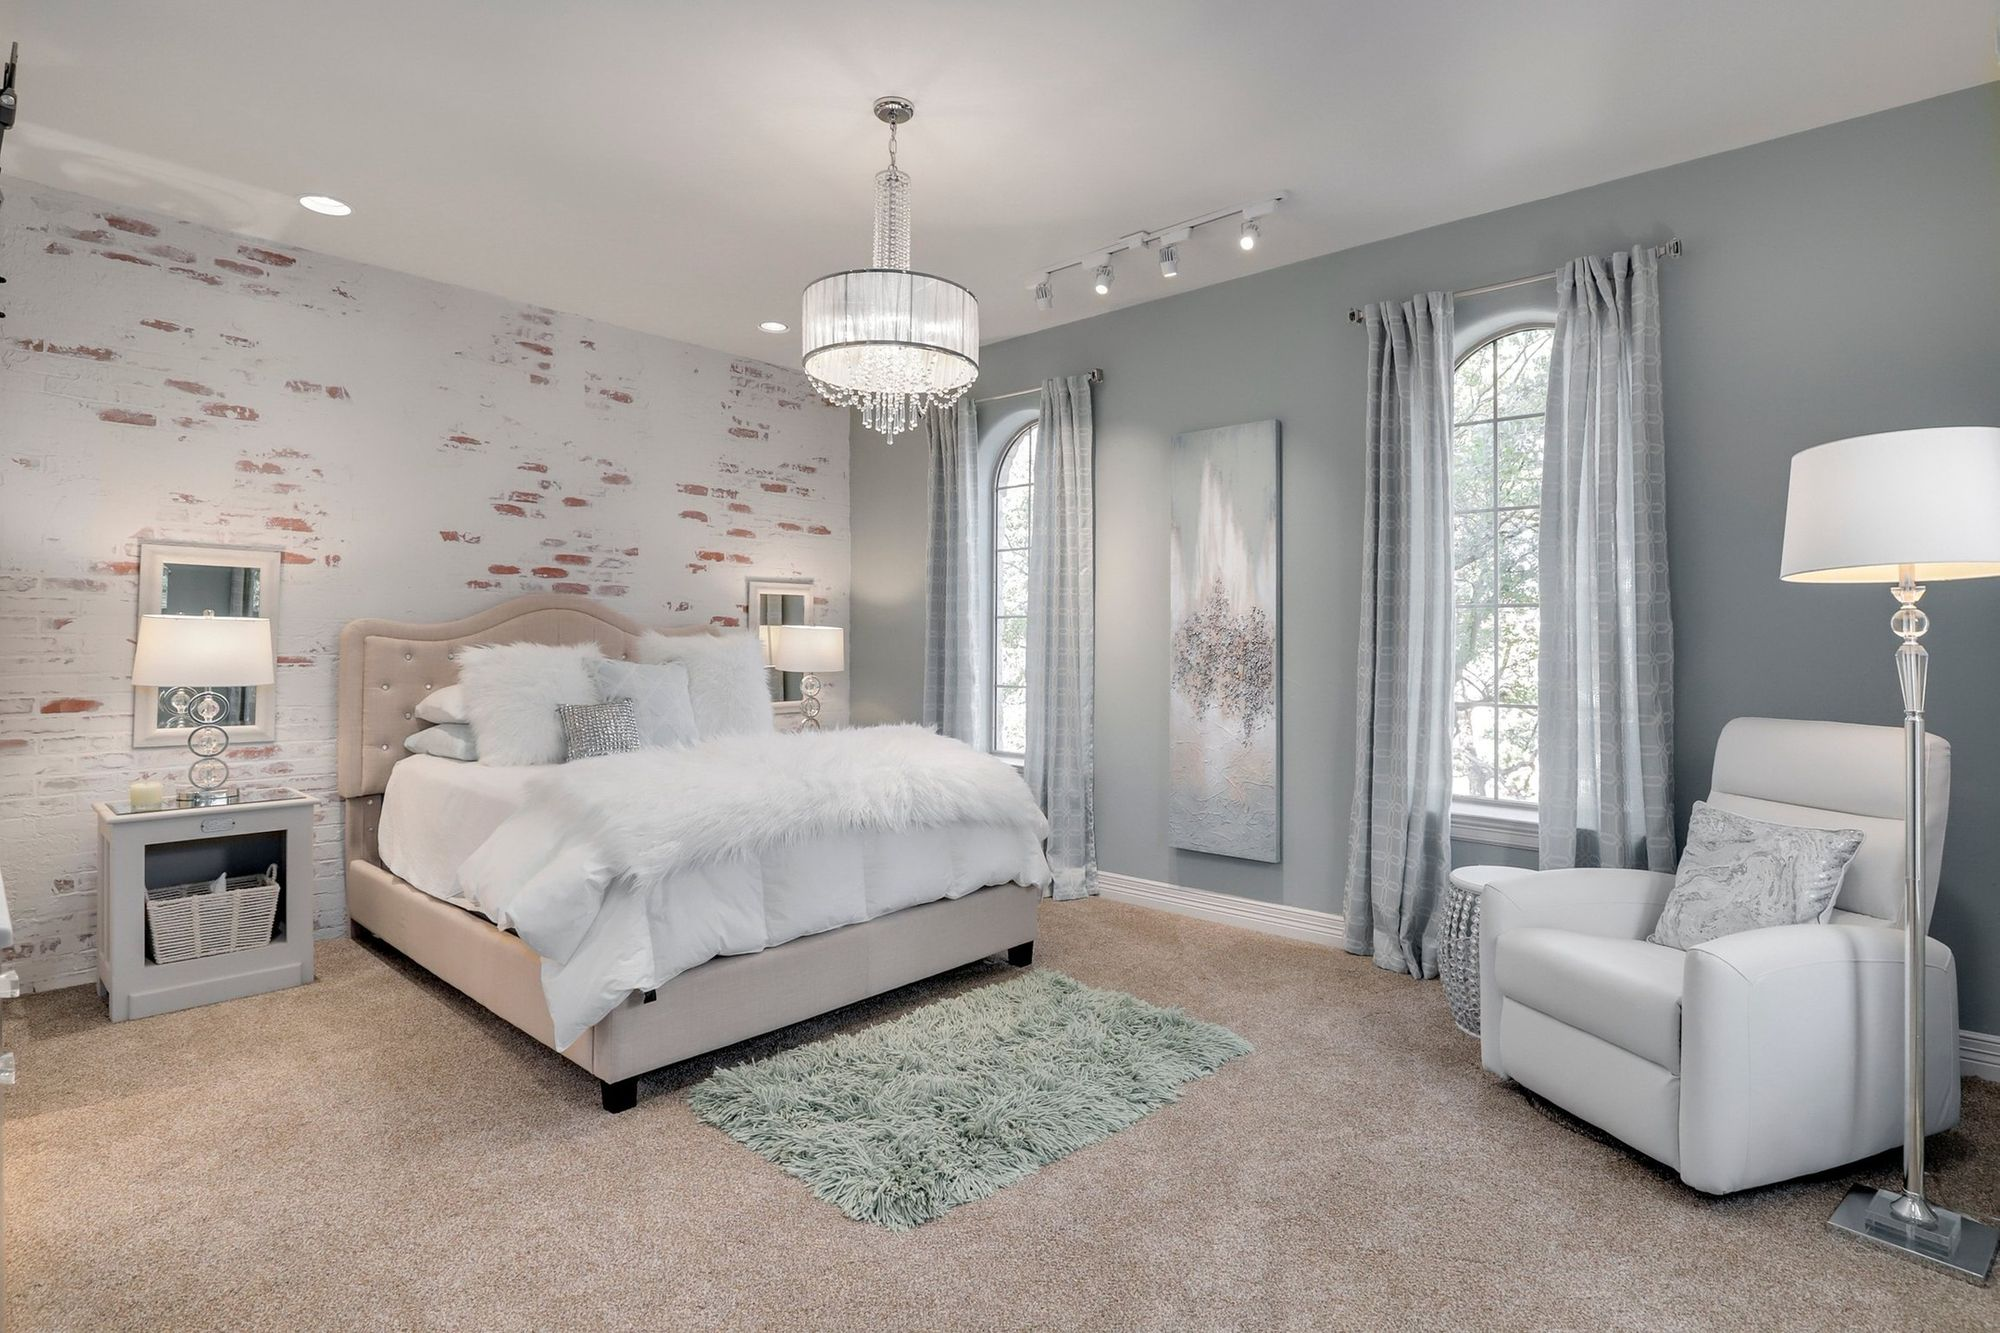 French country estate - bedroom